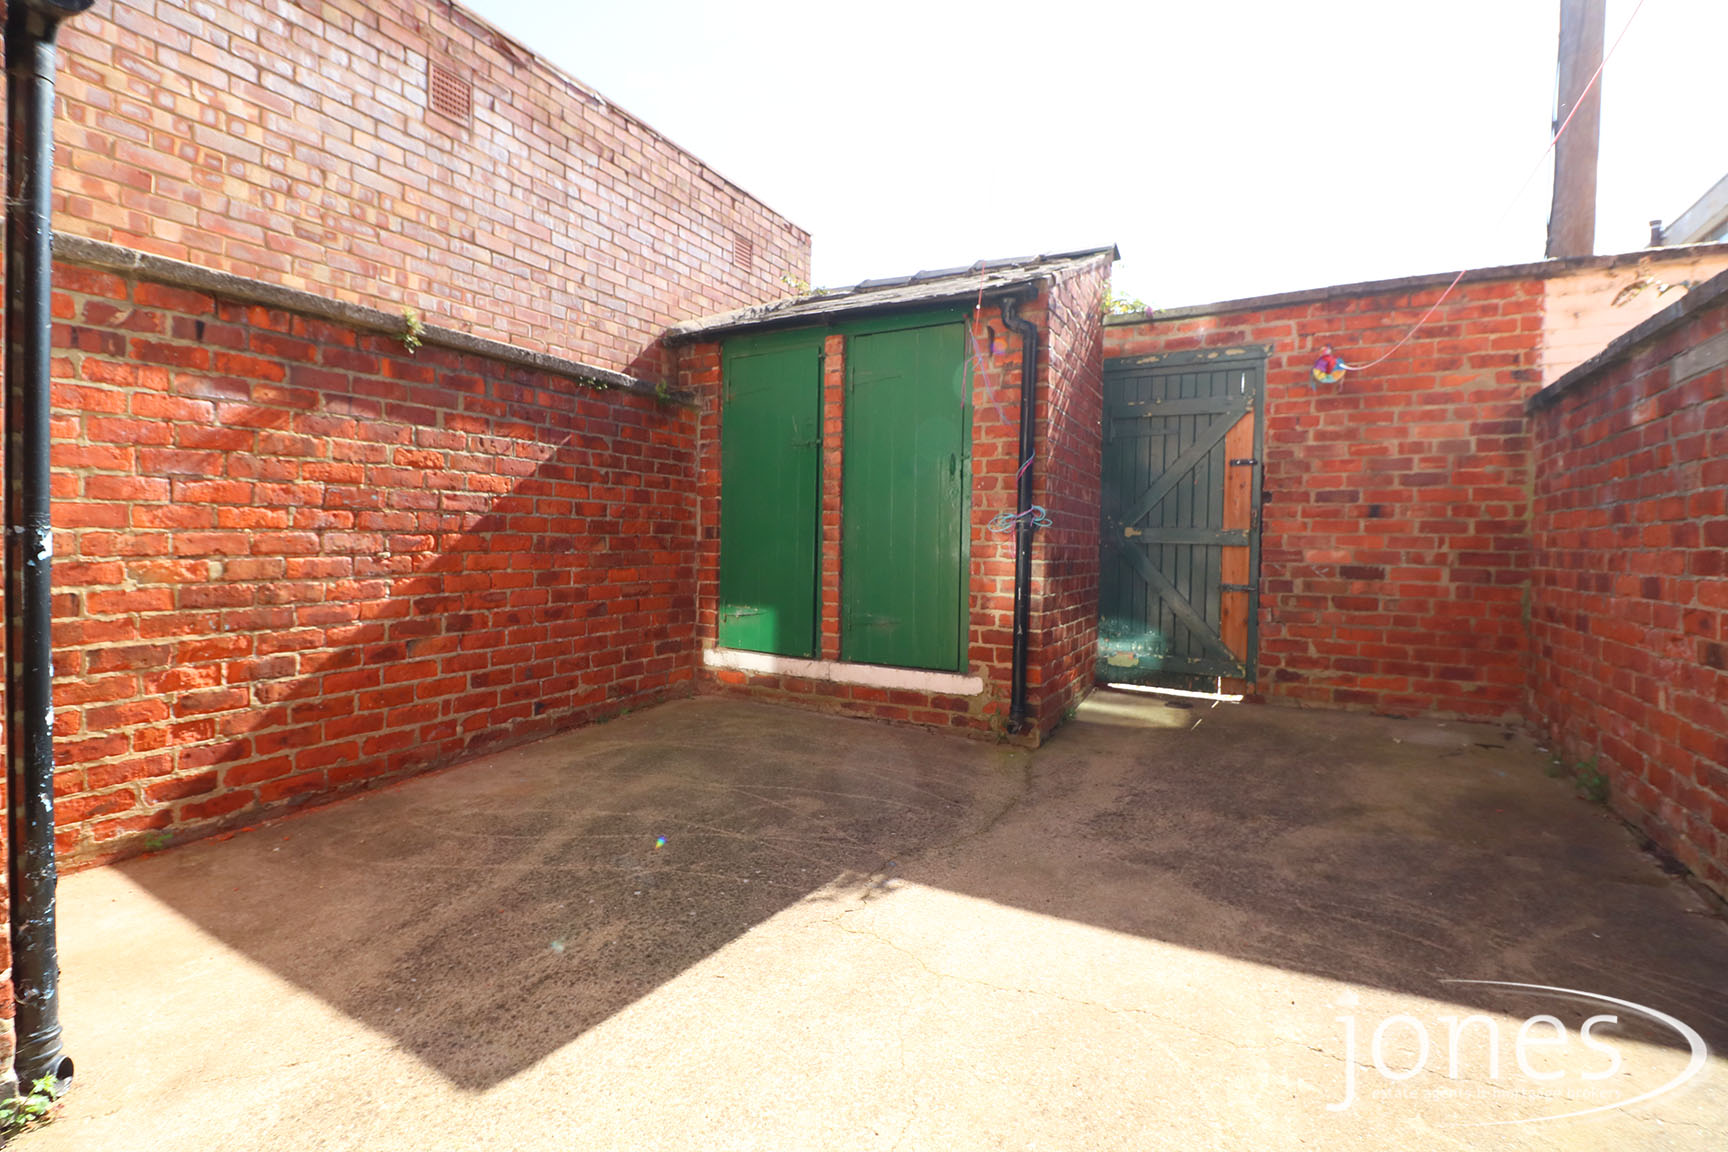 Home for Sale Let - Photo 08 Rosebery Street, Darlington, DL3 6EU